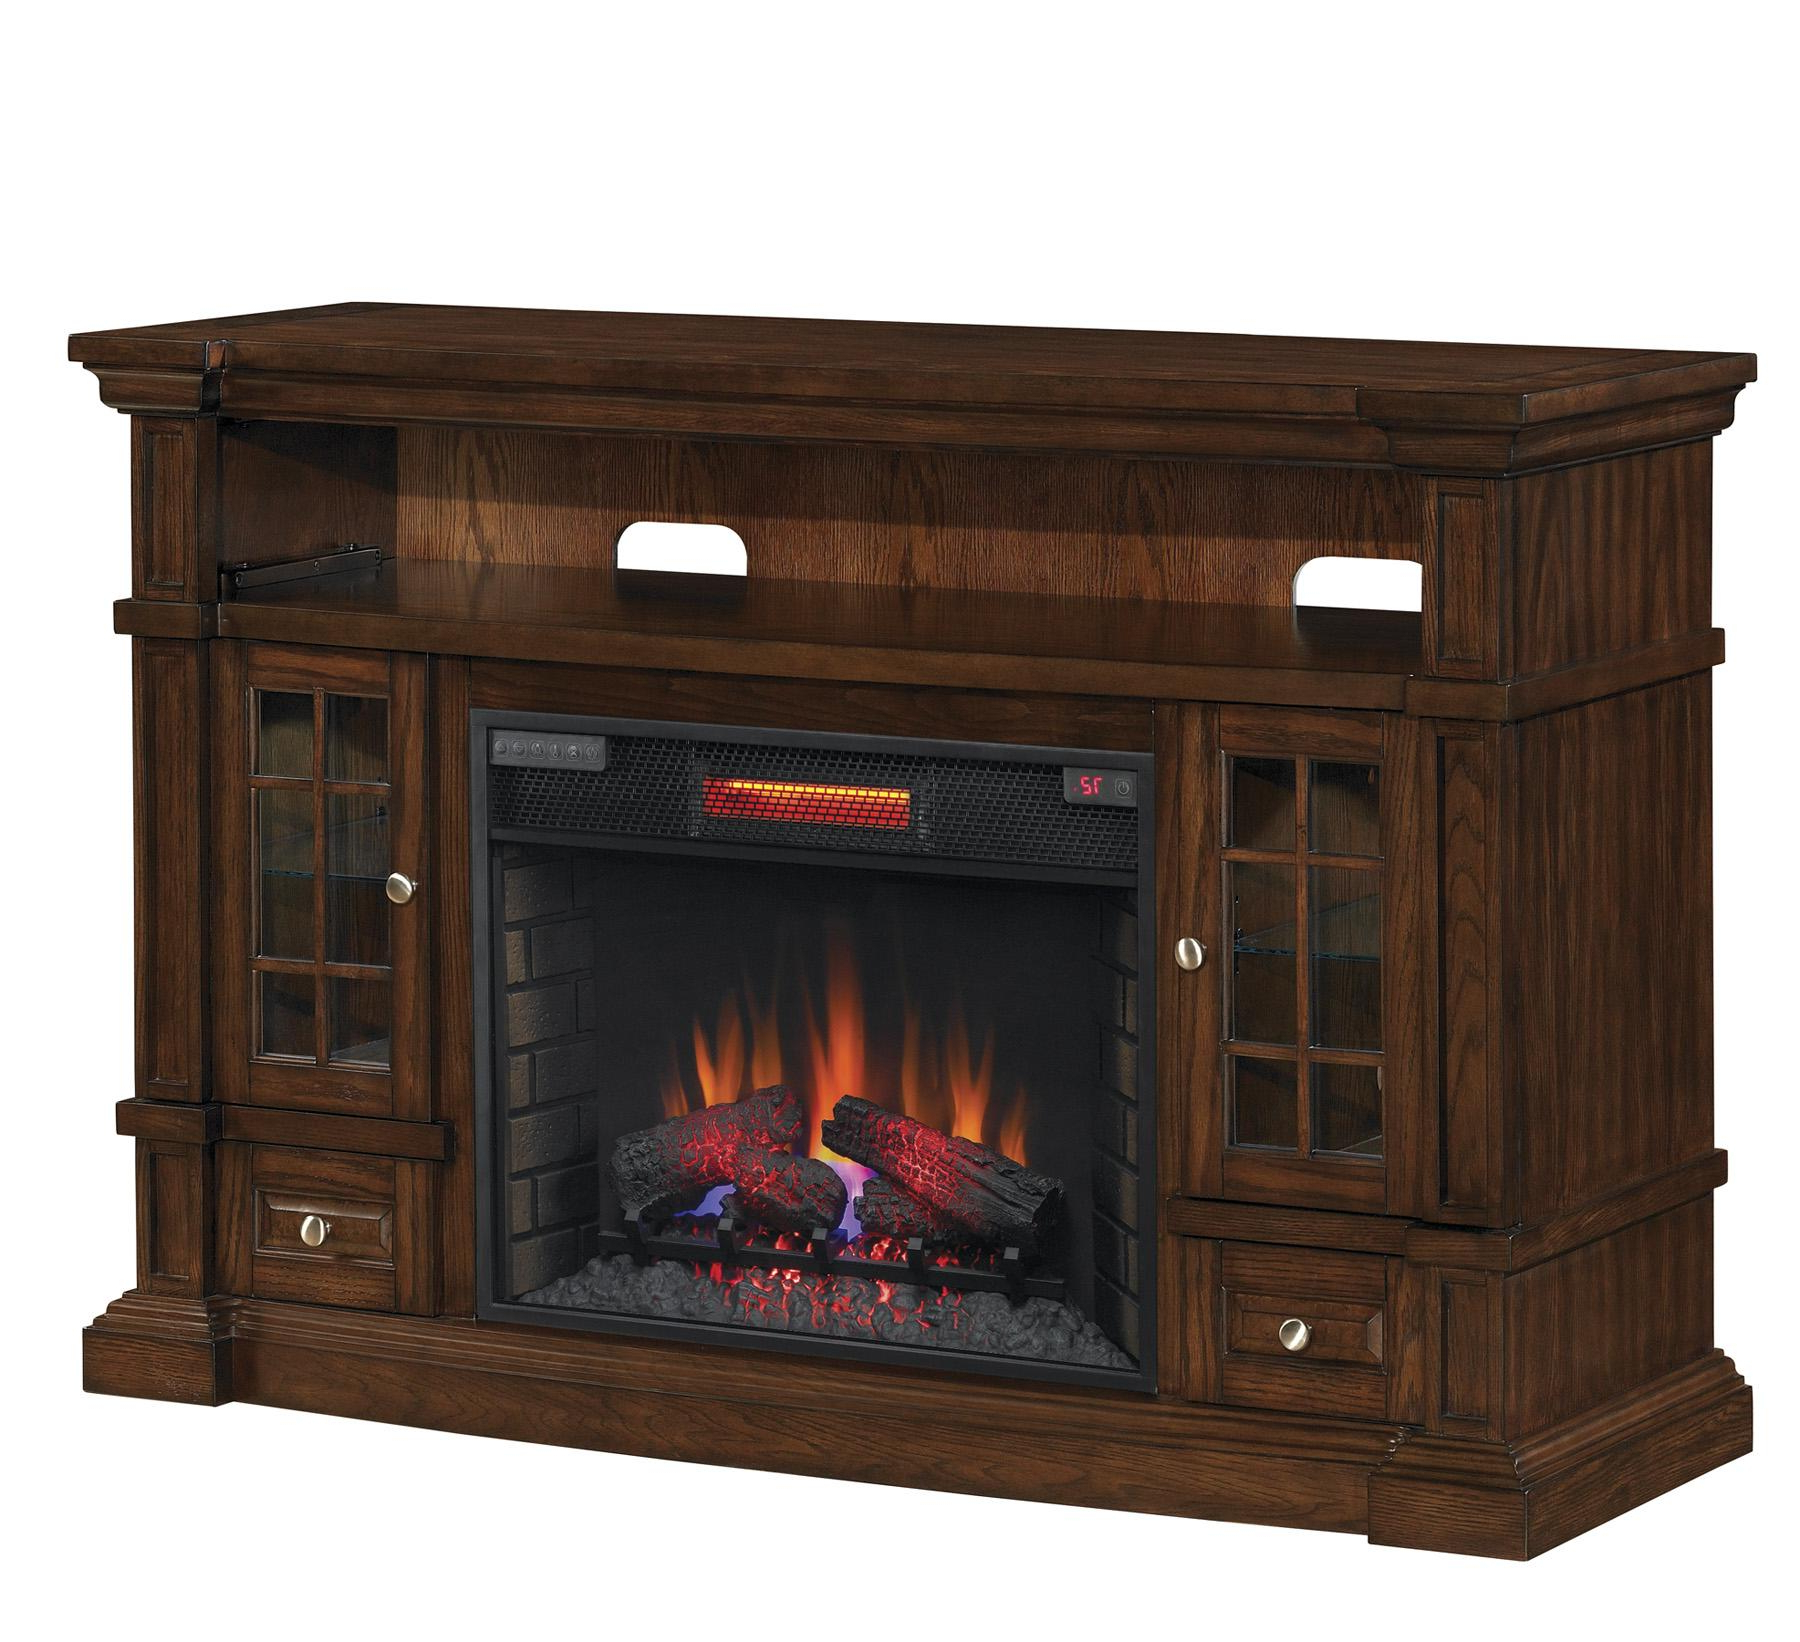 """Popular Amazon: Classicflame Belmont Tv Stand For Tvs Up To 65 Regarding Casey May Tv Stands For Tvs Up To 70"""" (View 1 of 25)"""